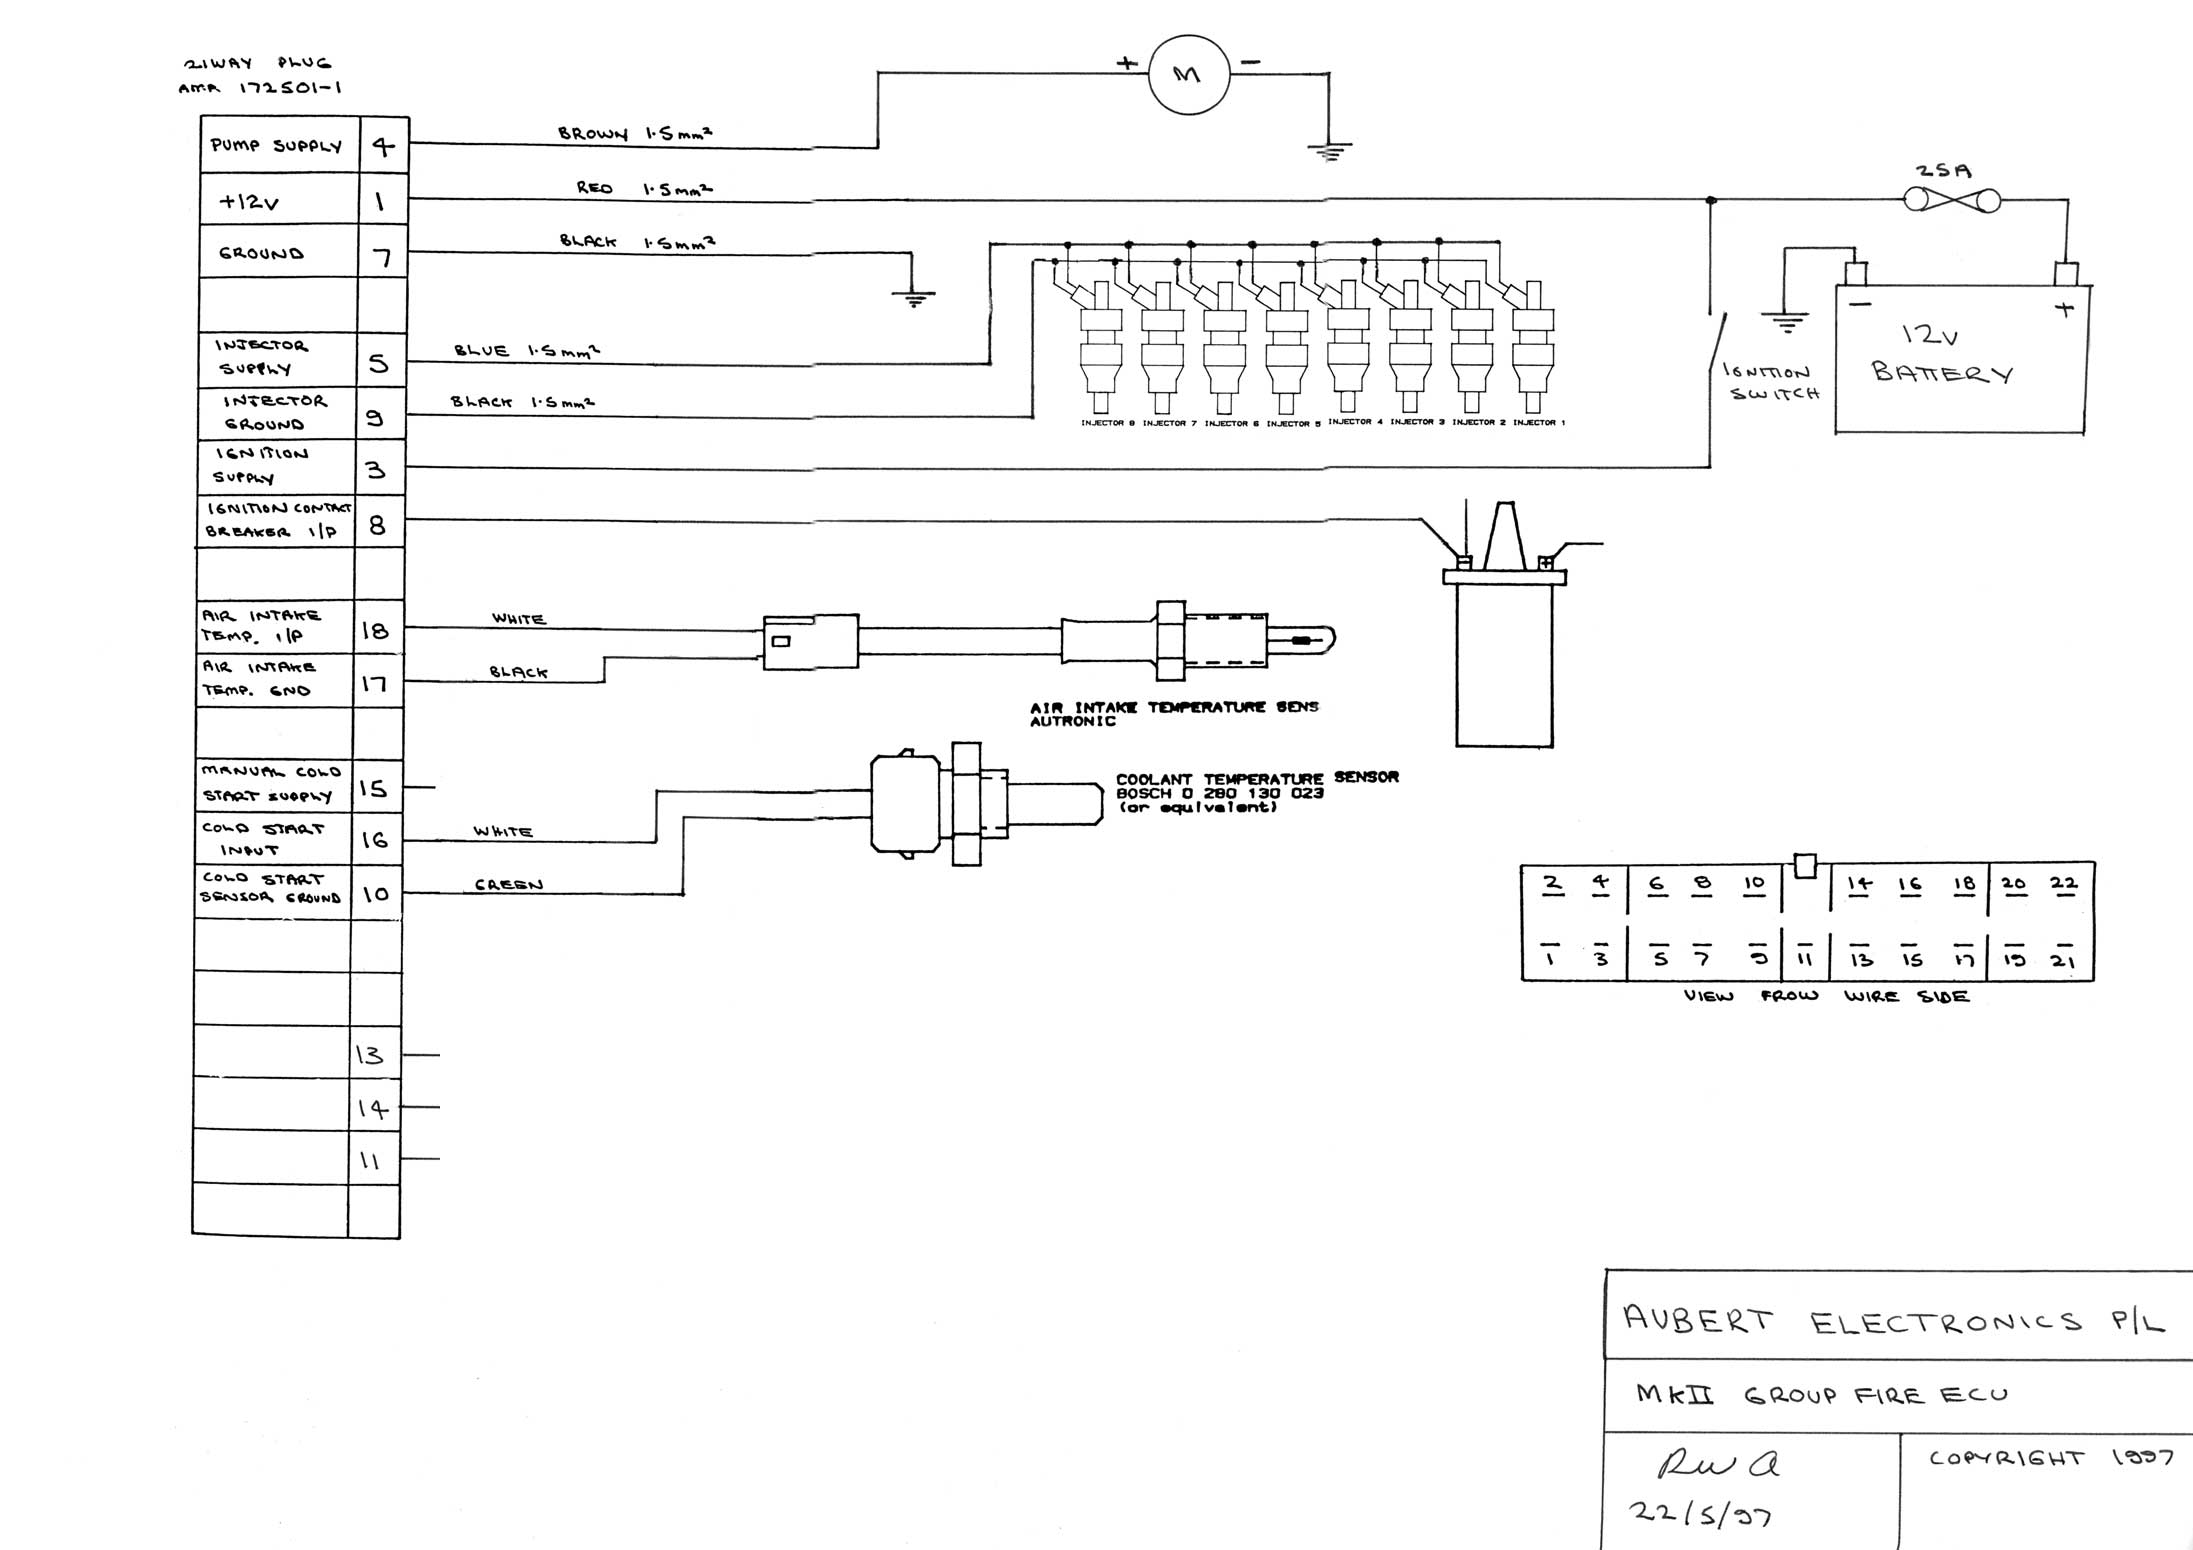 Group fire_wiring wiring diagram page autronic 500r wiring diagram at soozxer.org